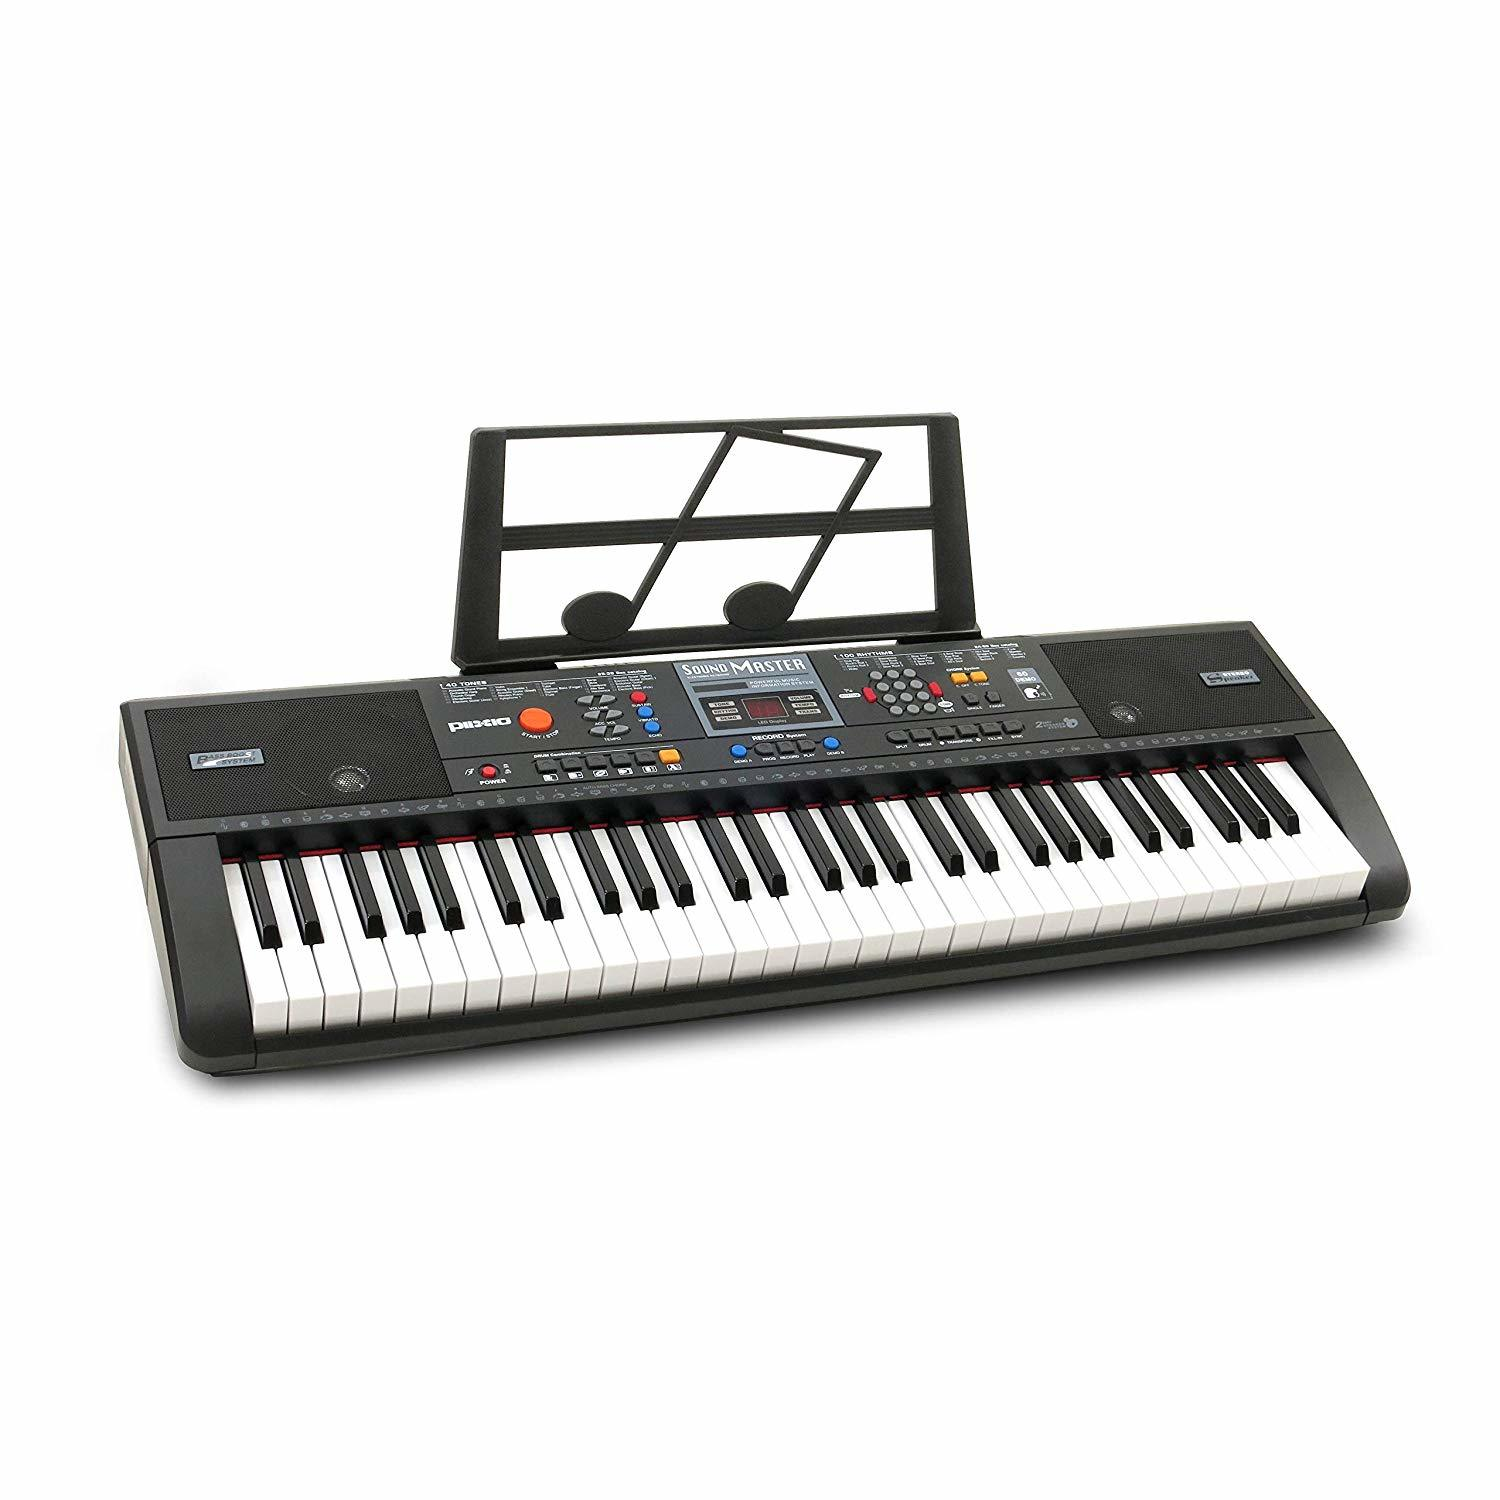 Plixio 61-Key Electric Piano Keyboard